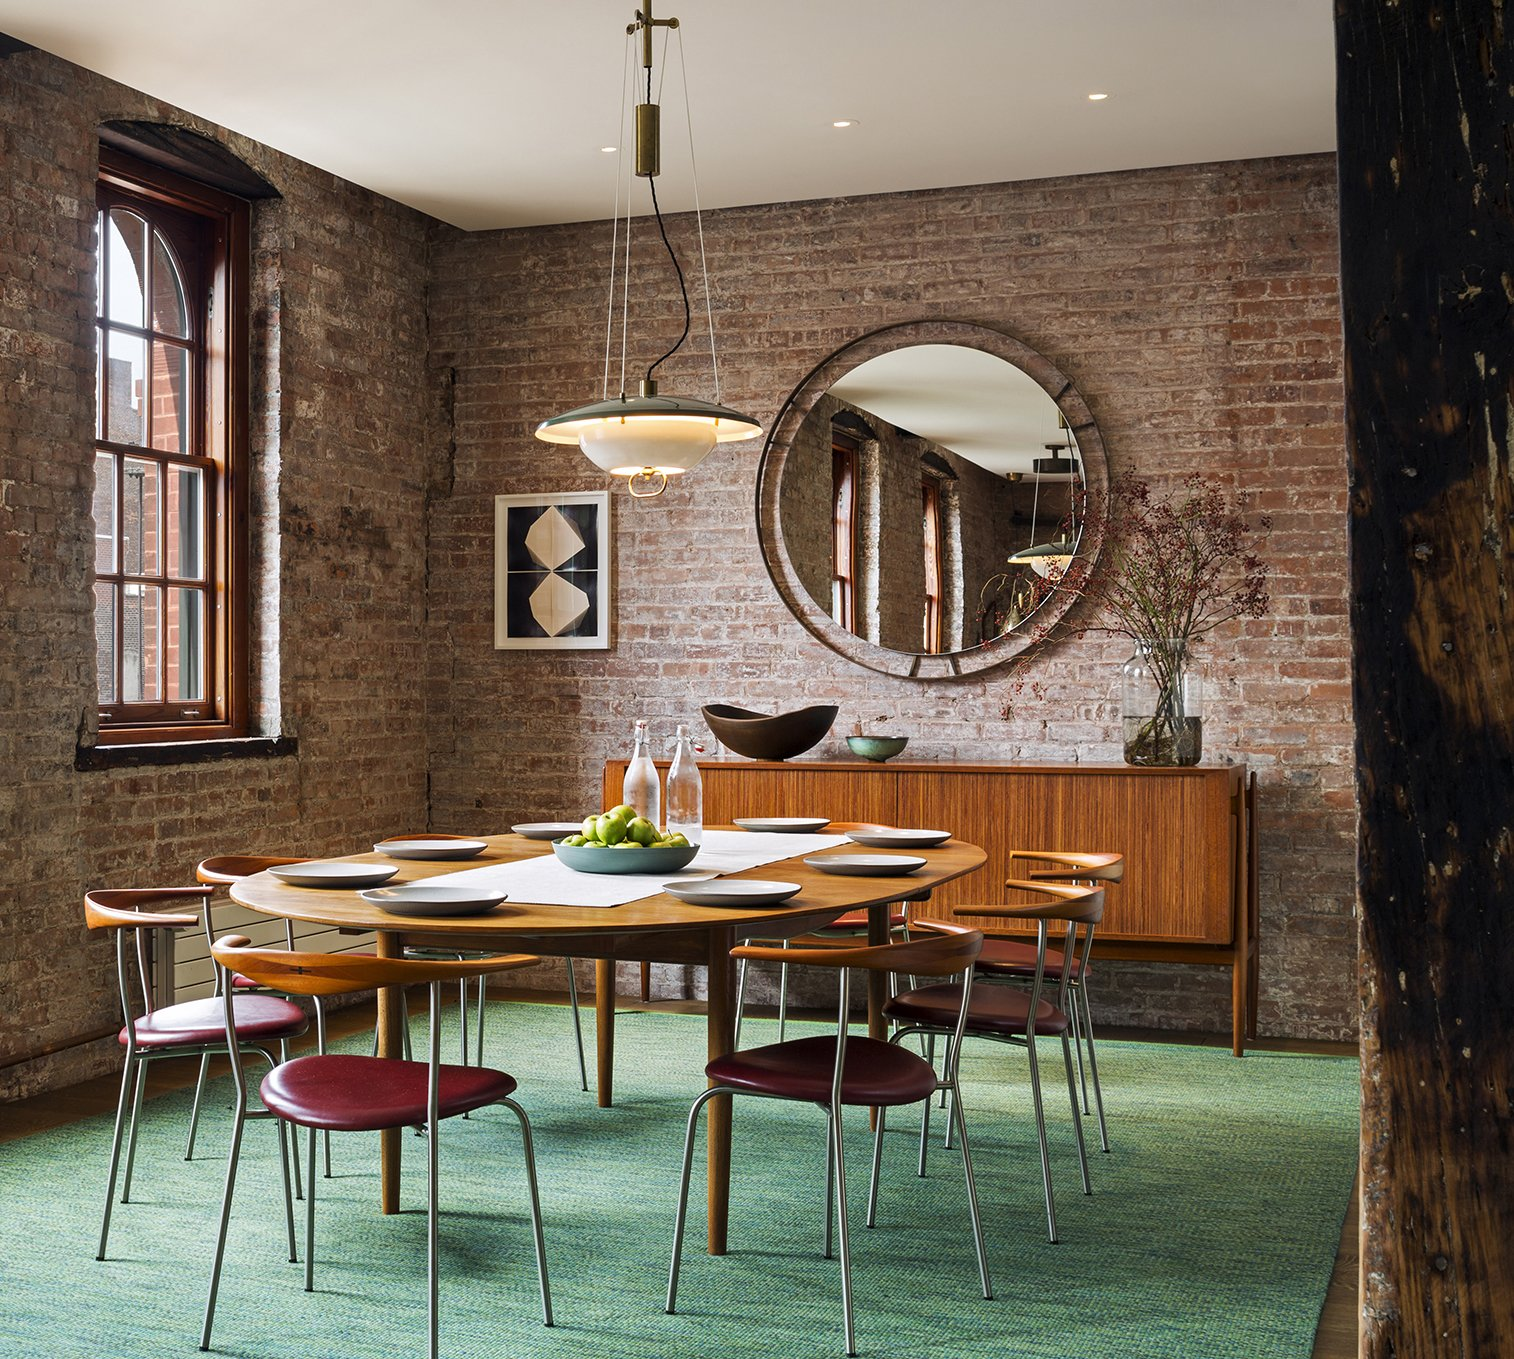 Light and open vintage furnishings contrast with the industrial character of the space.